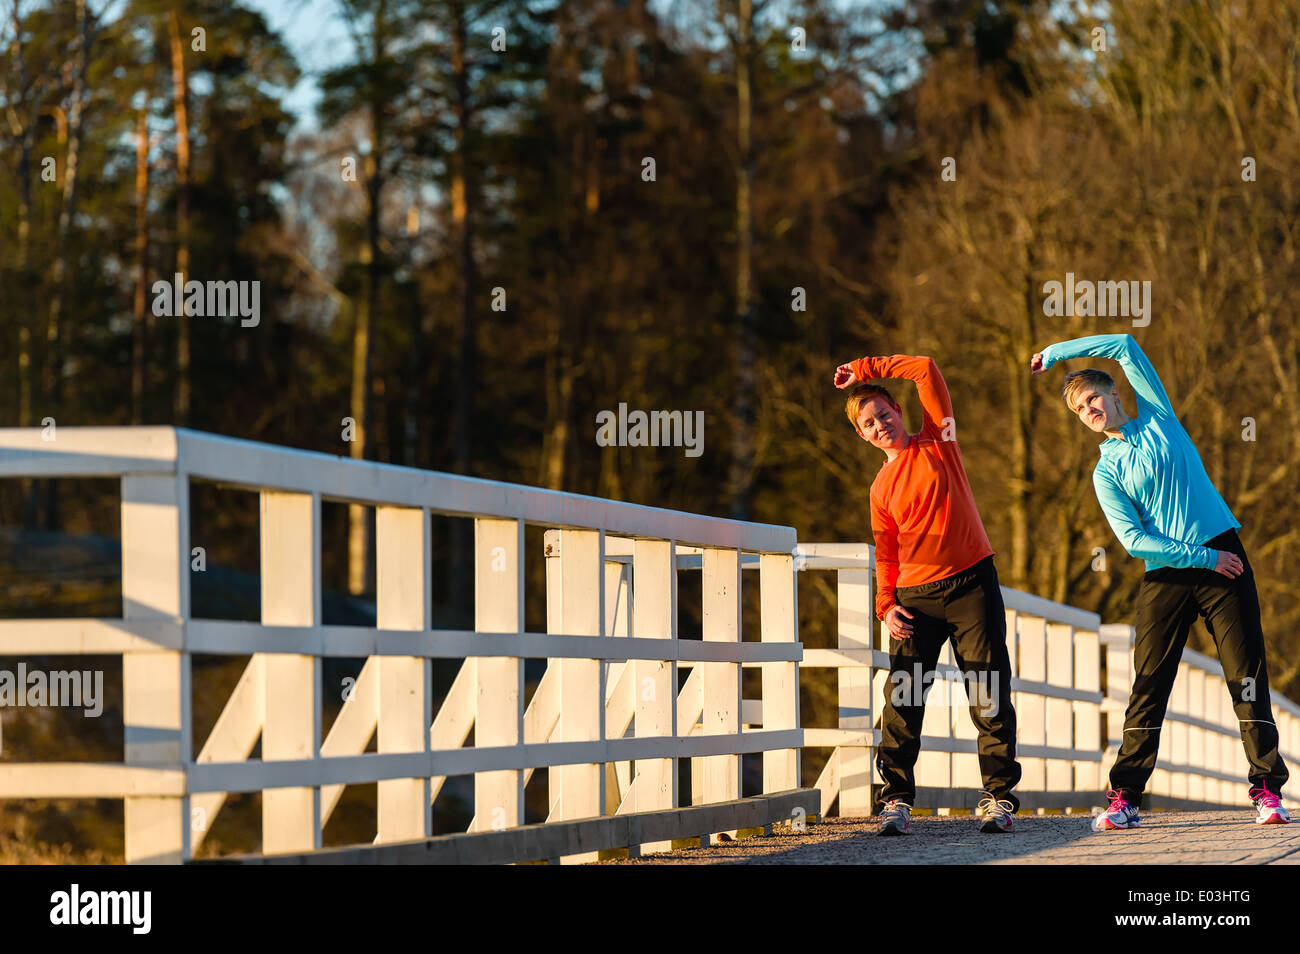 Two women stretch together on the bridge at sunrise - Stock Image